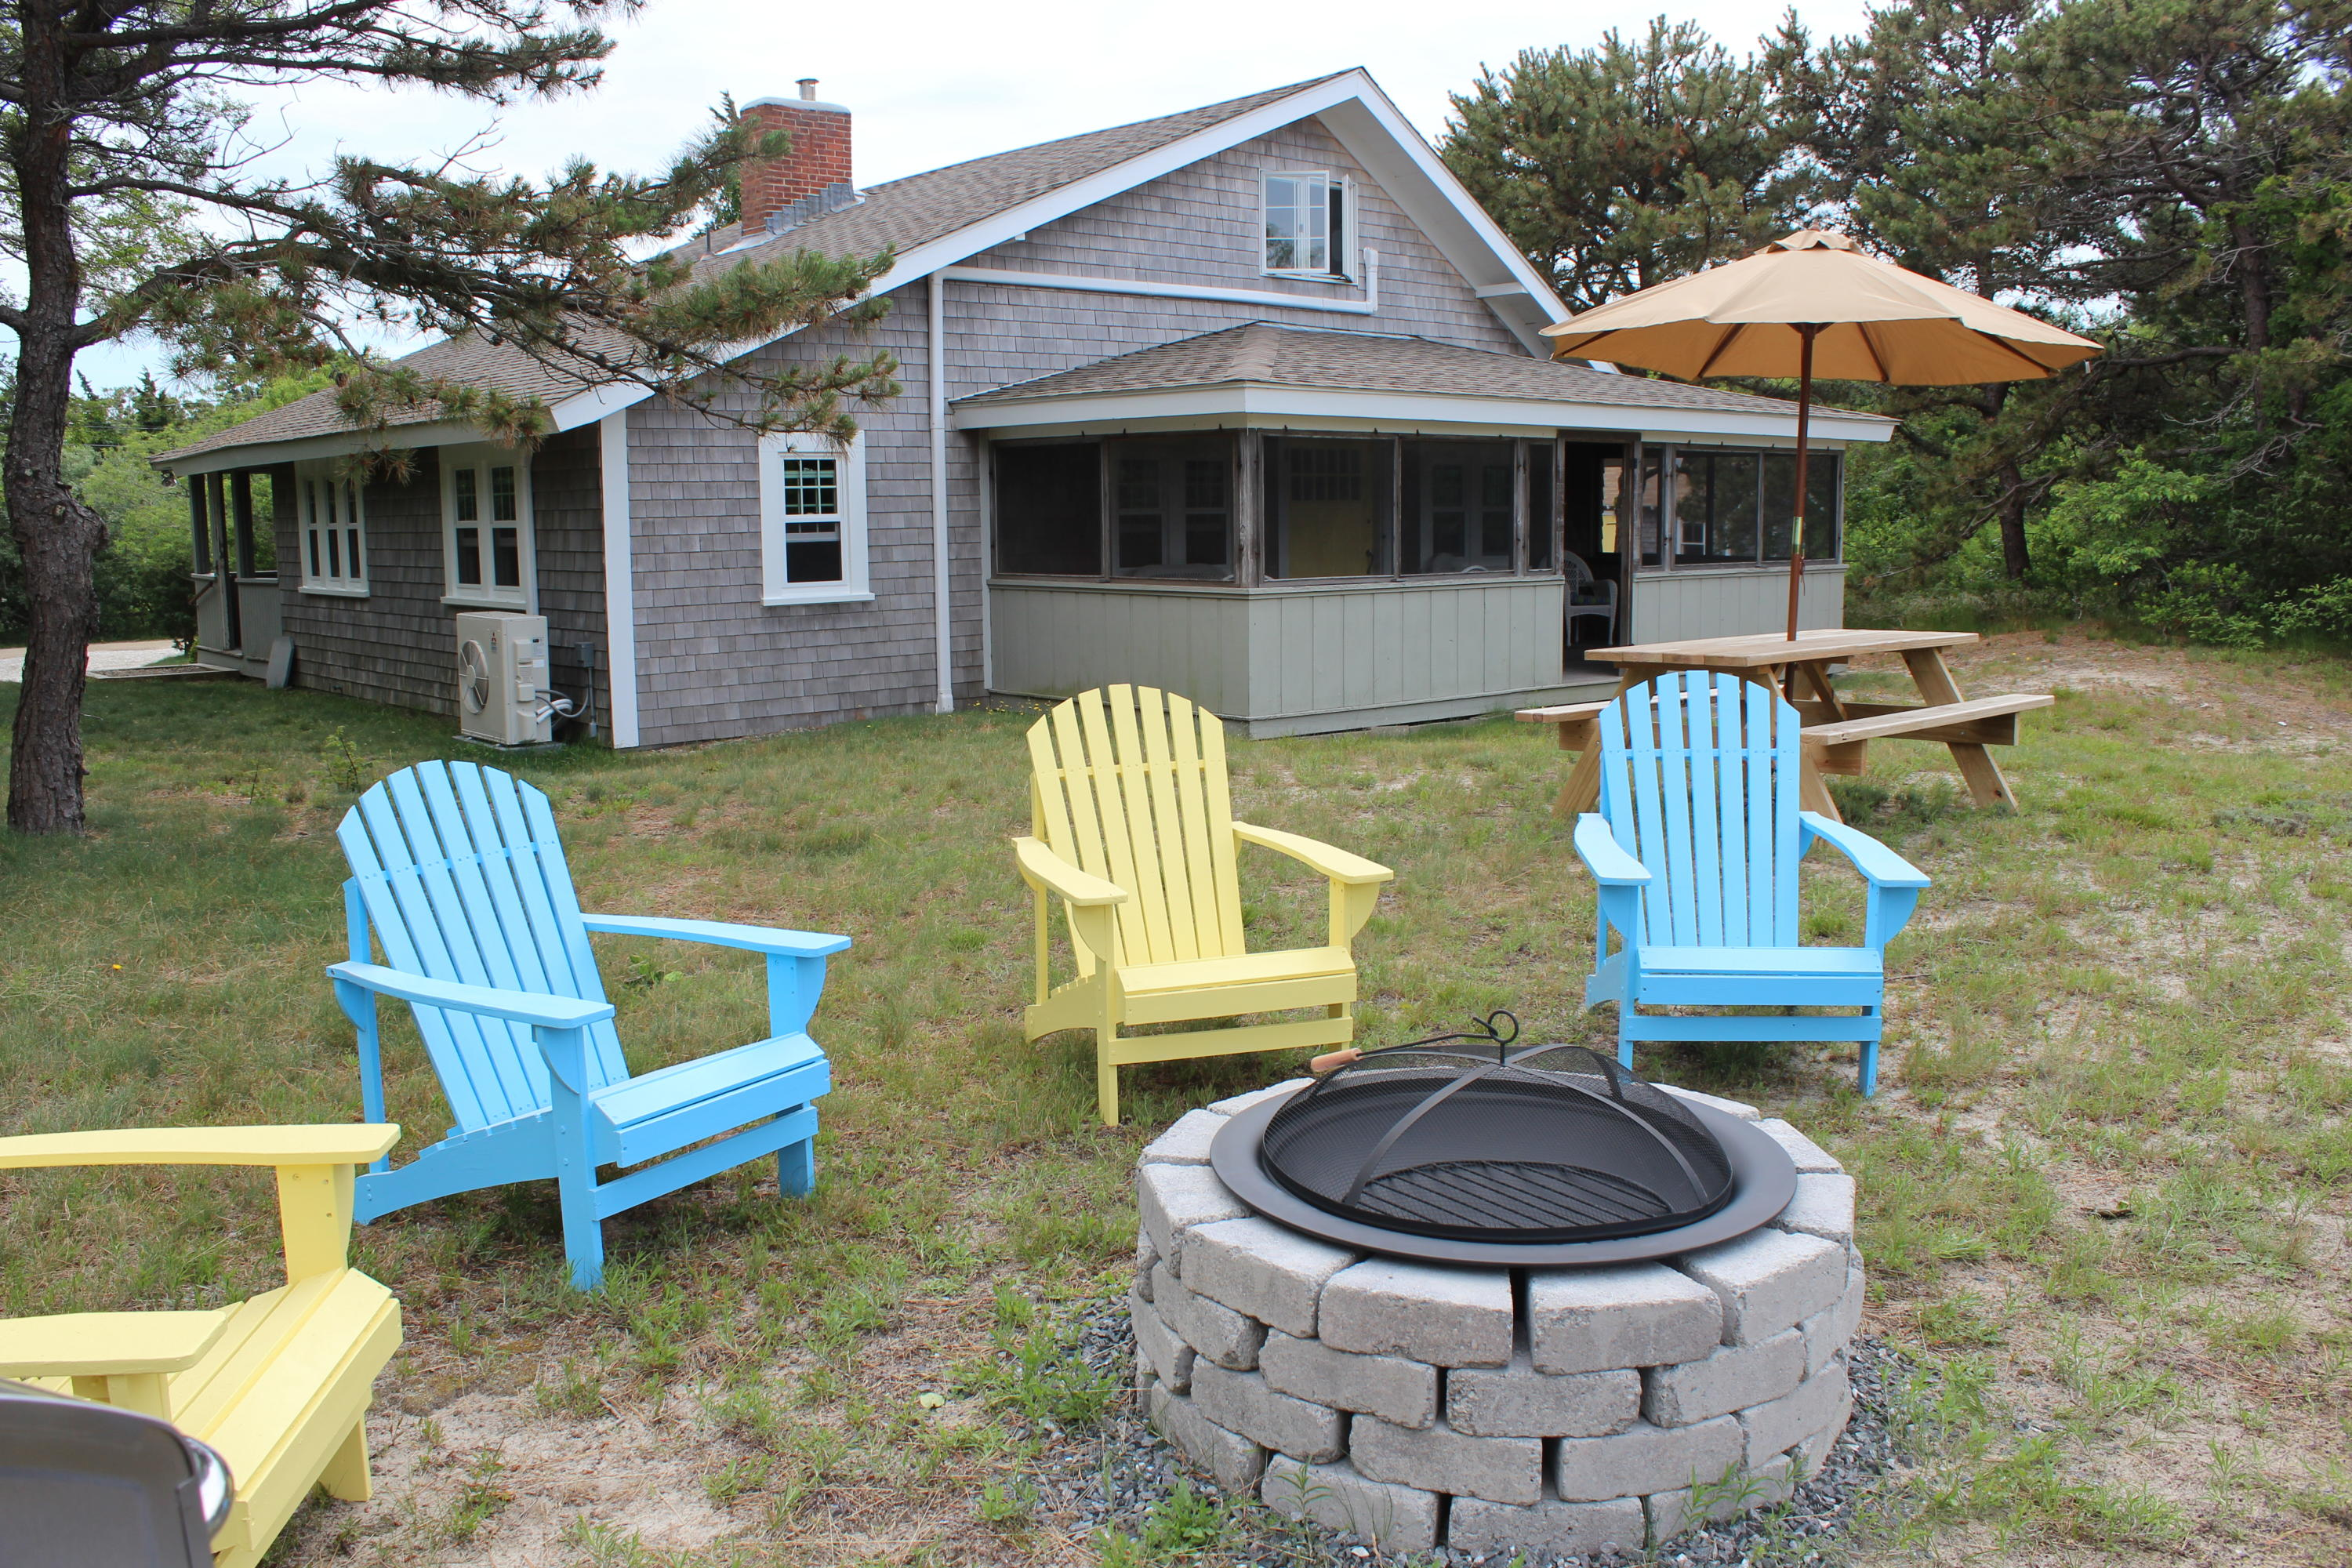 click to view more details 4-6 Franz Road, Orleans, MA 02653